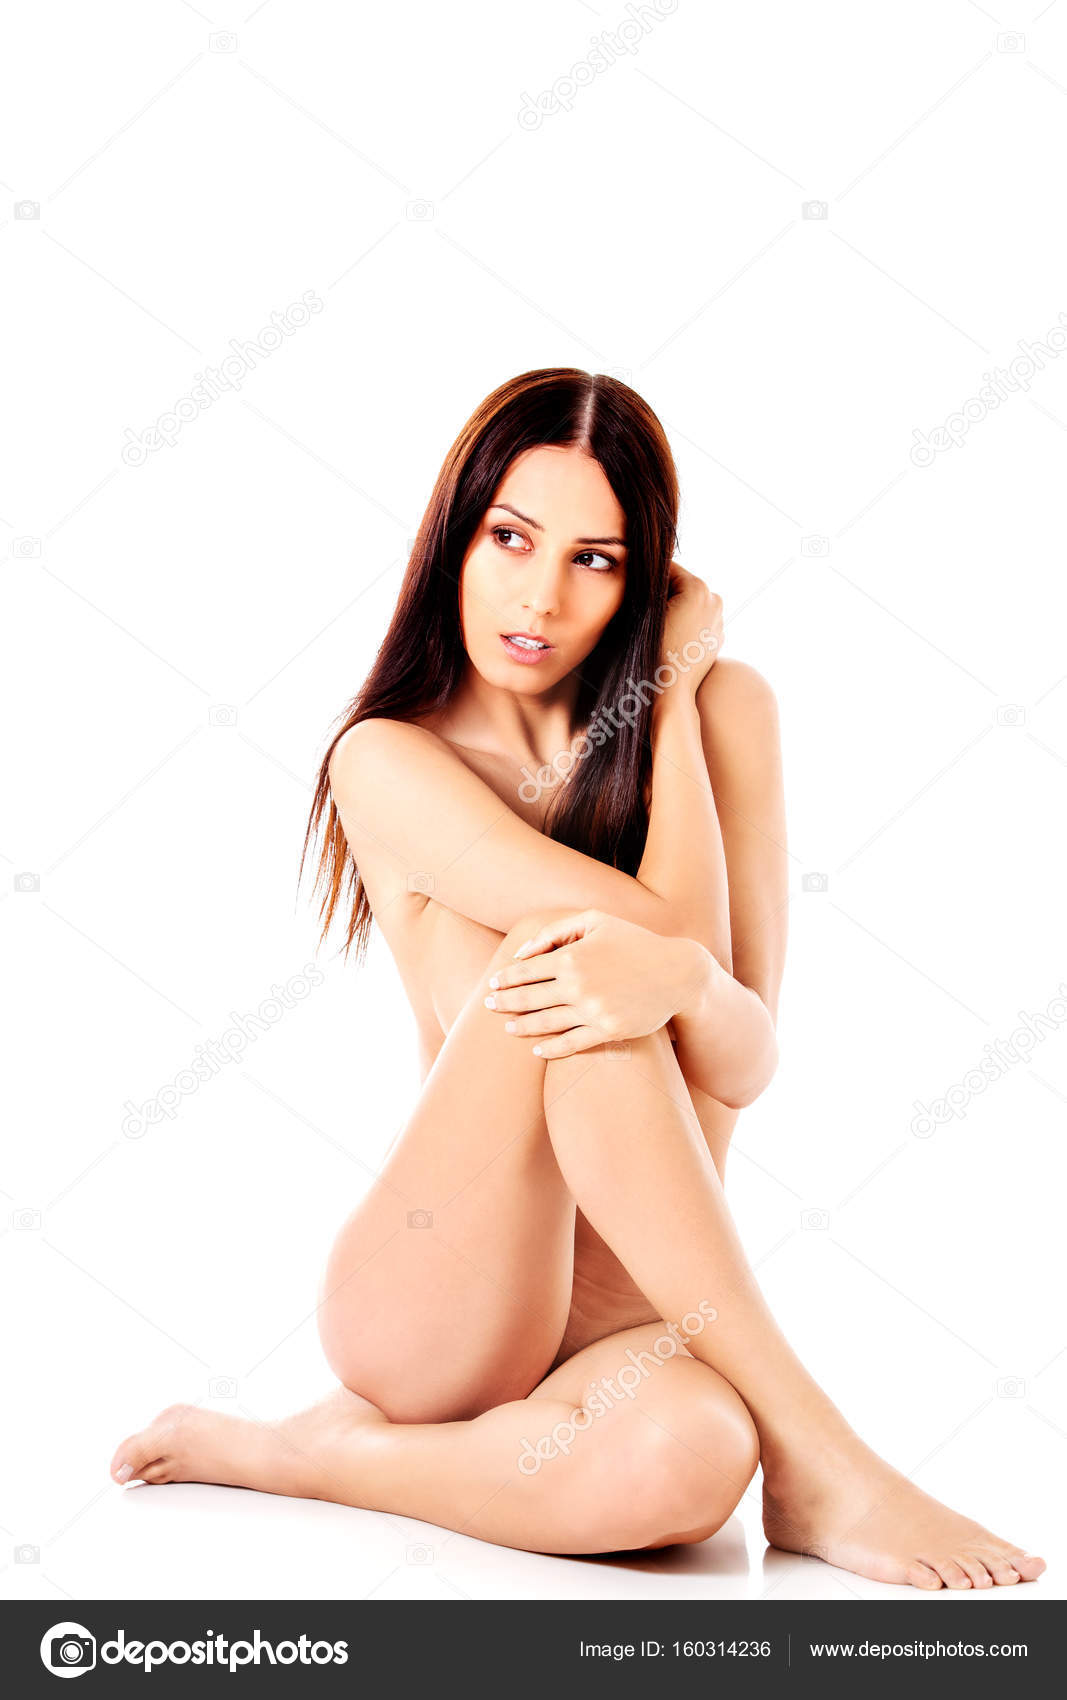 Commit nude art model sitting know